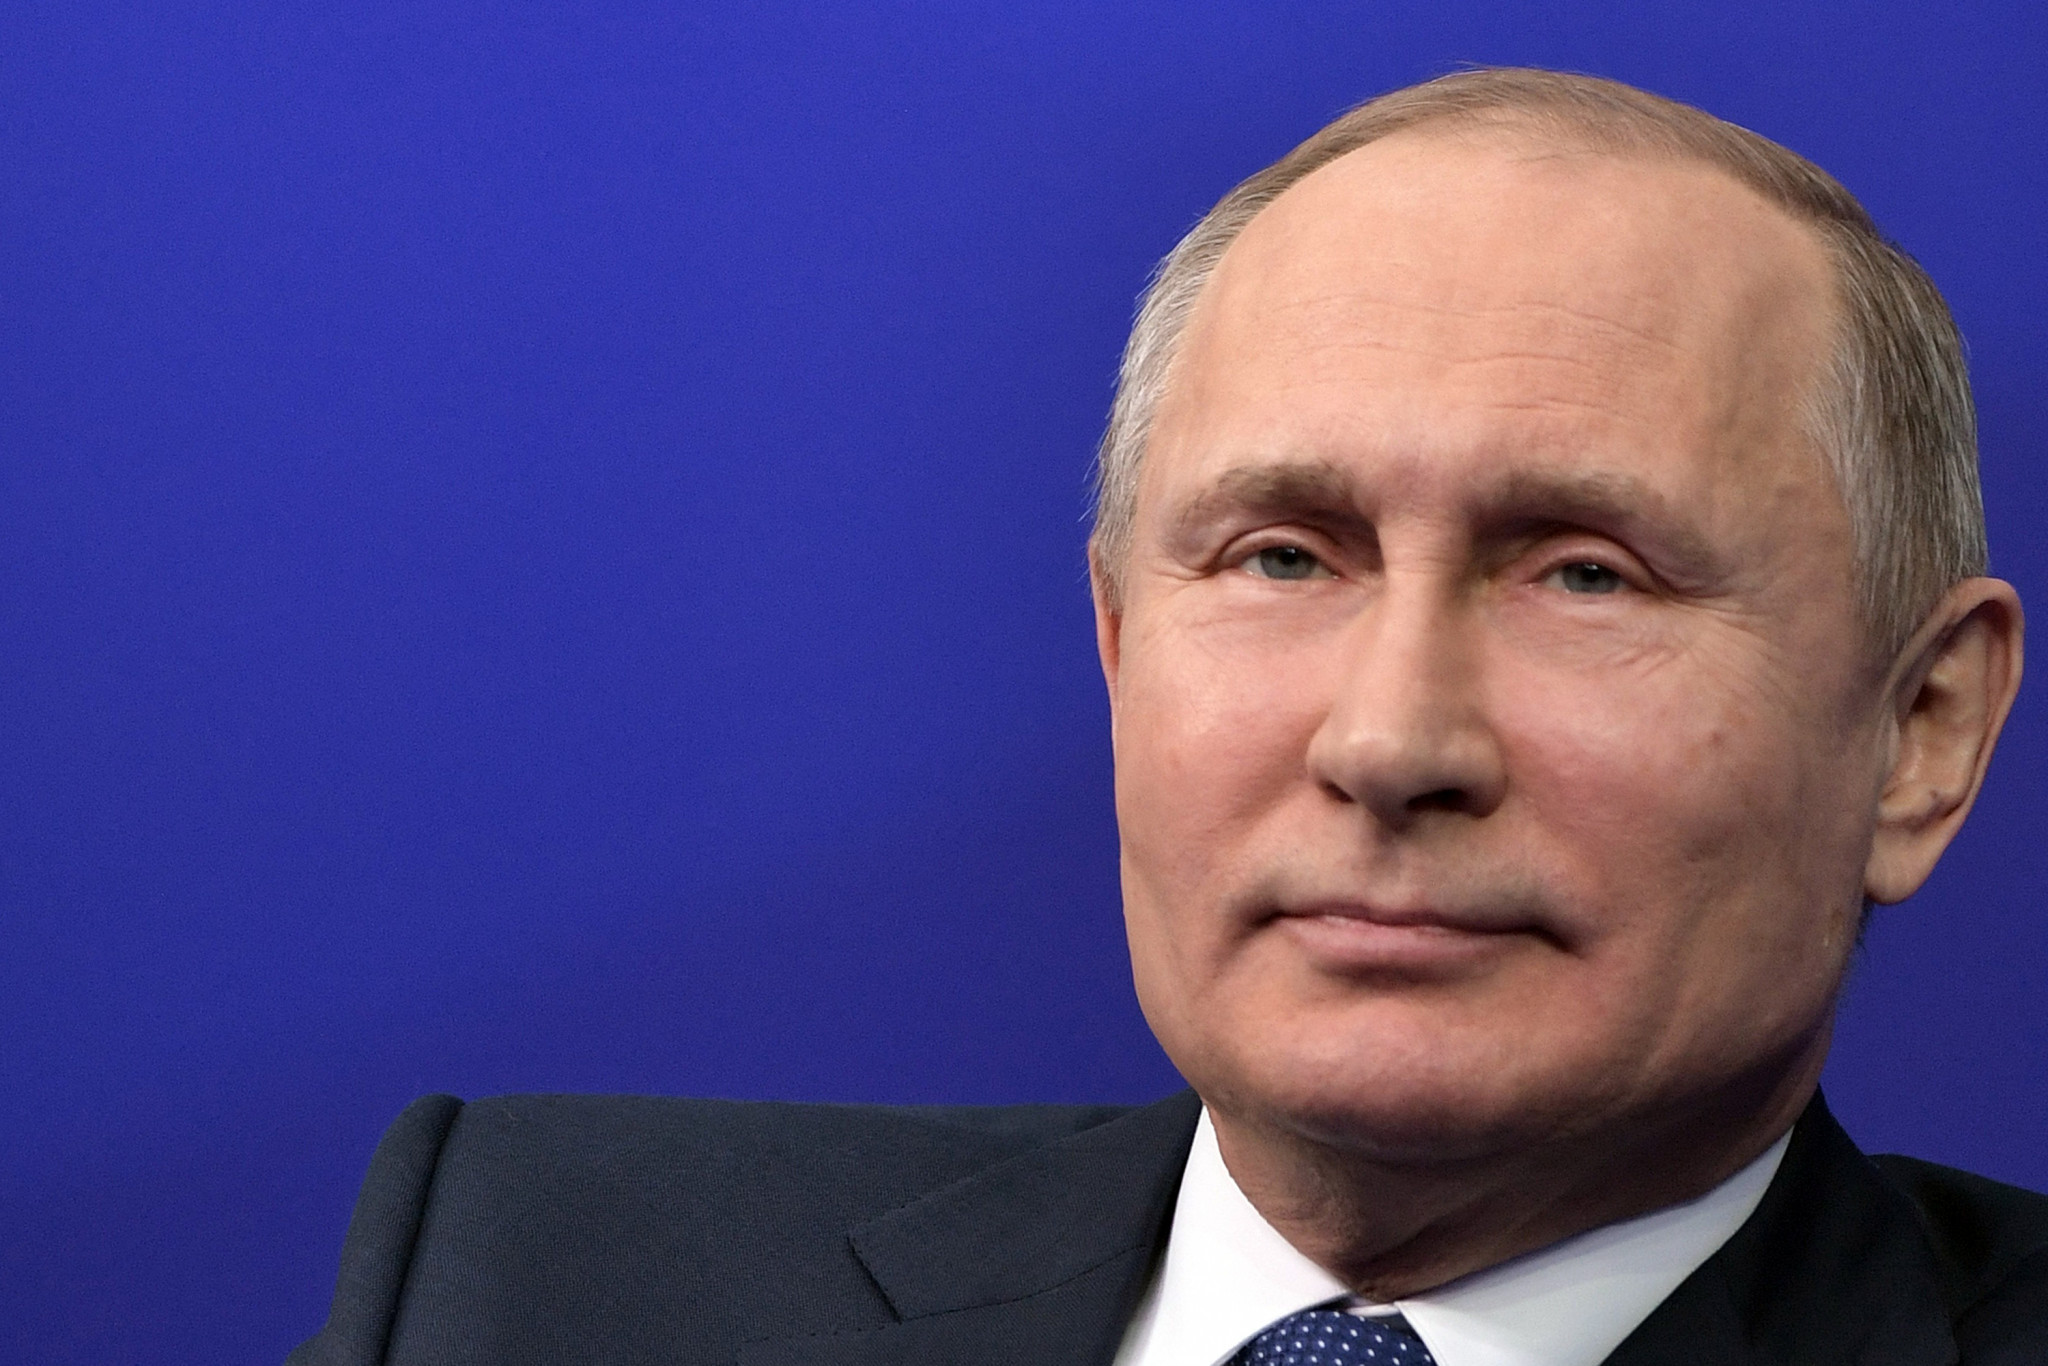 Vladimir Putin today called Grigory Rodchenkov an imbecile ©Getty Images